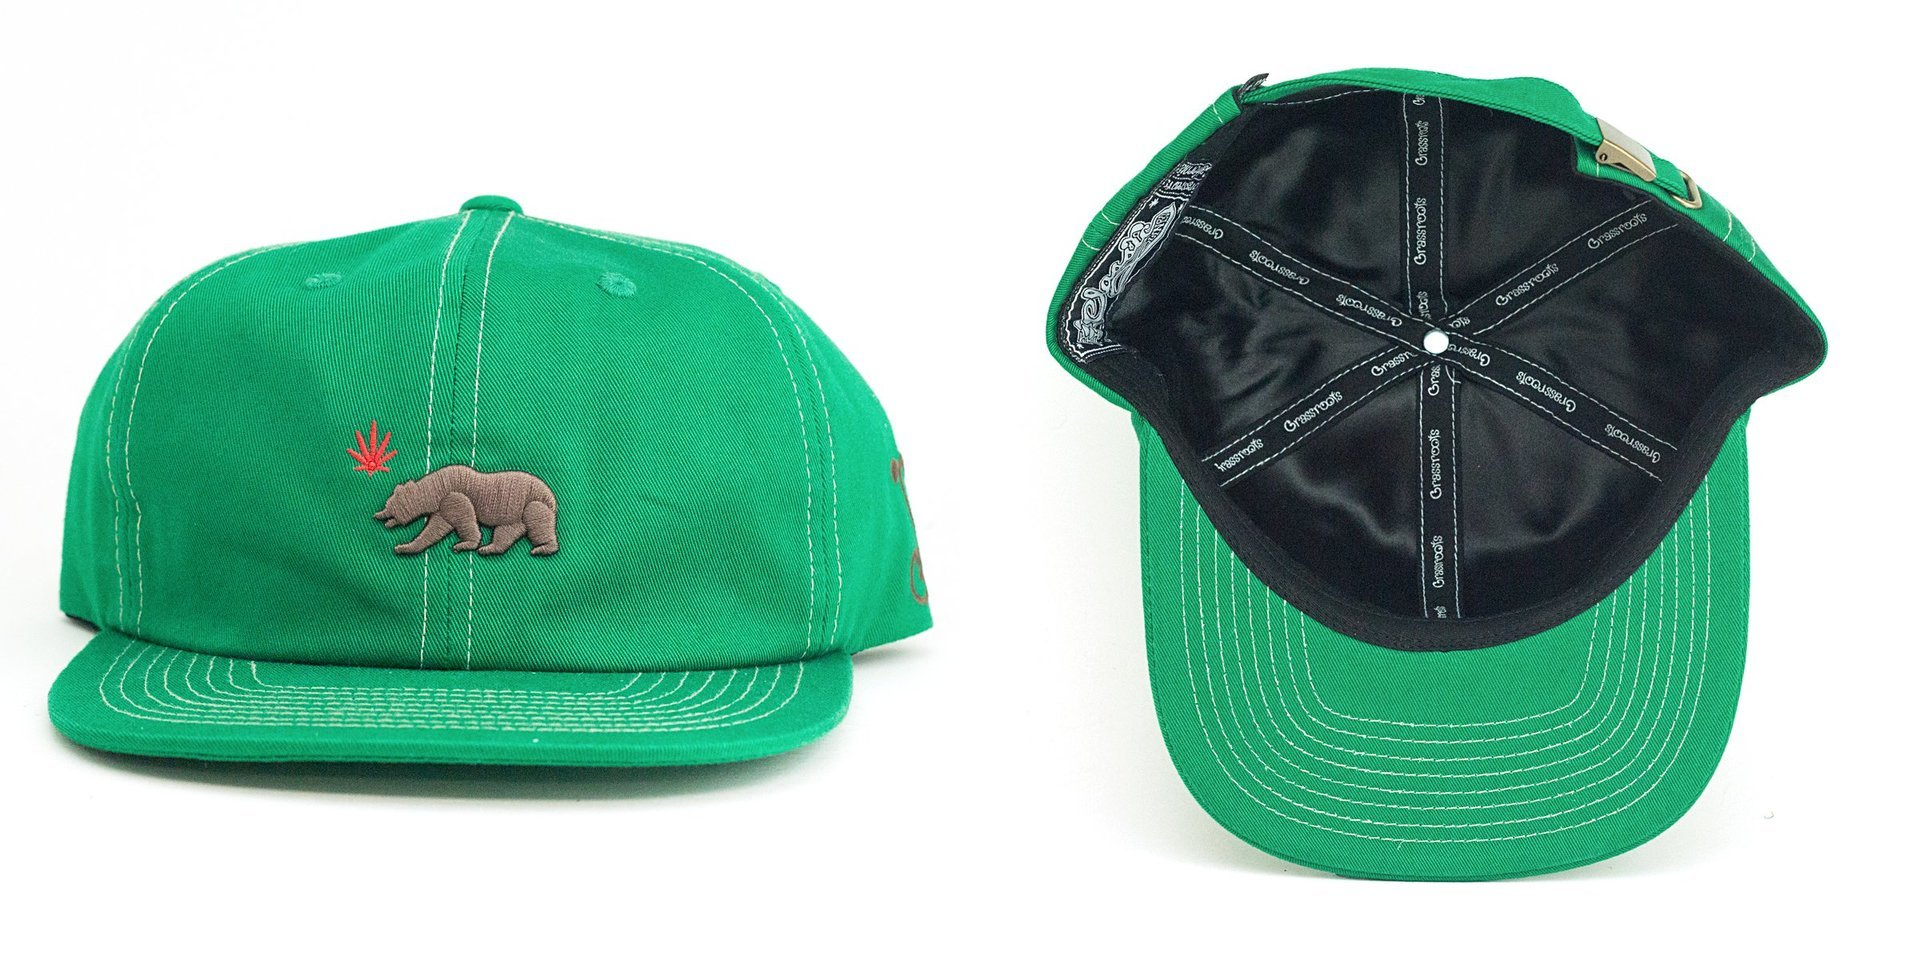 OG Cali Greens Dad Strapback Grassroots California Hat